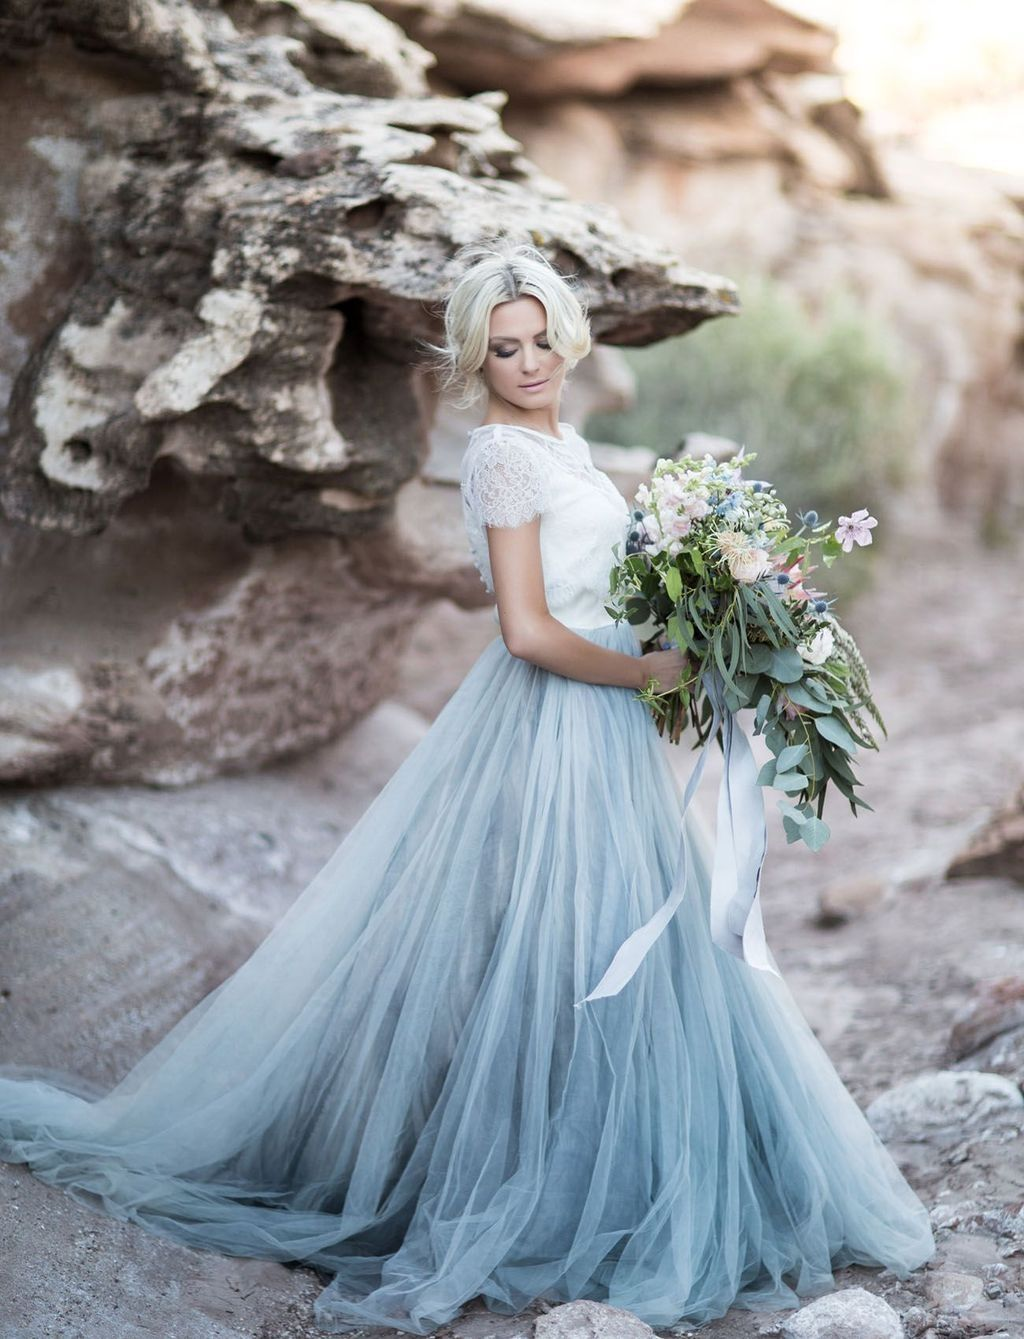 53 Trends Beautiful Lace And Tulle Wedding Dress Ideas | Dress ideas ...